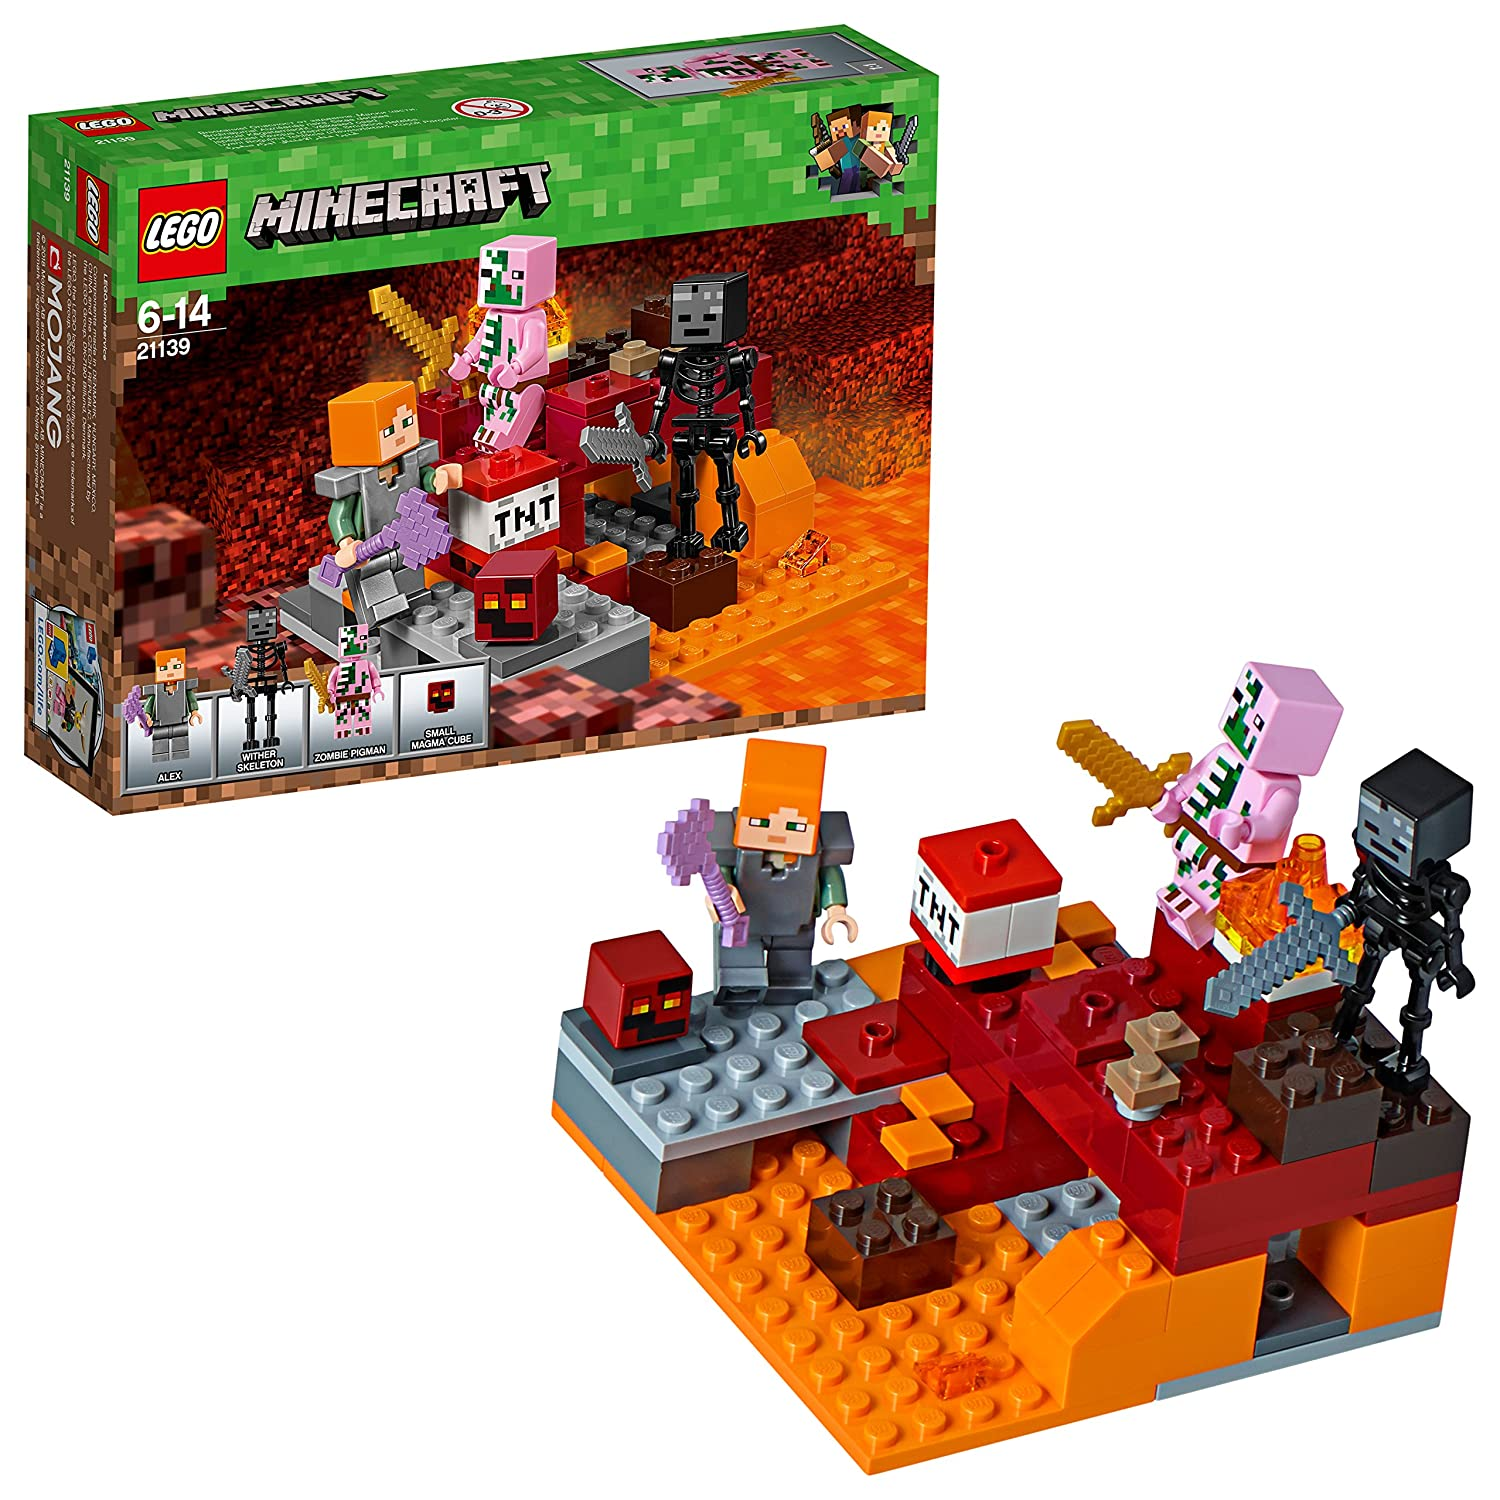 Lego Uk 21139 Minecraft The Nether Fight Construction Toy Amazon Assembling Building Block Toys Games